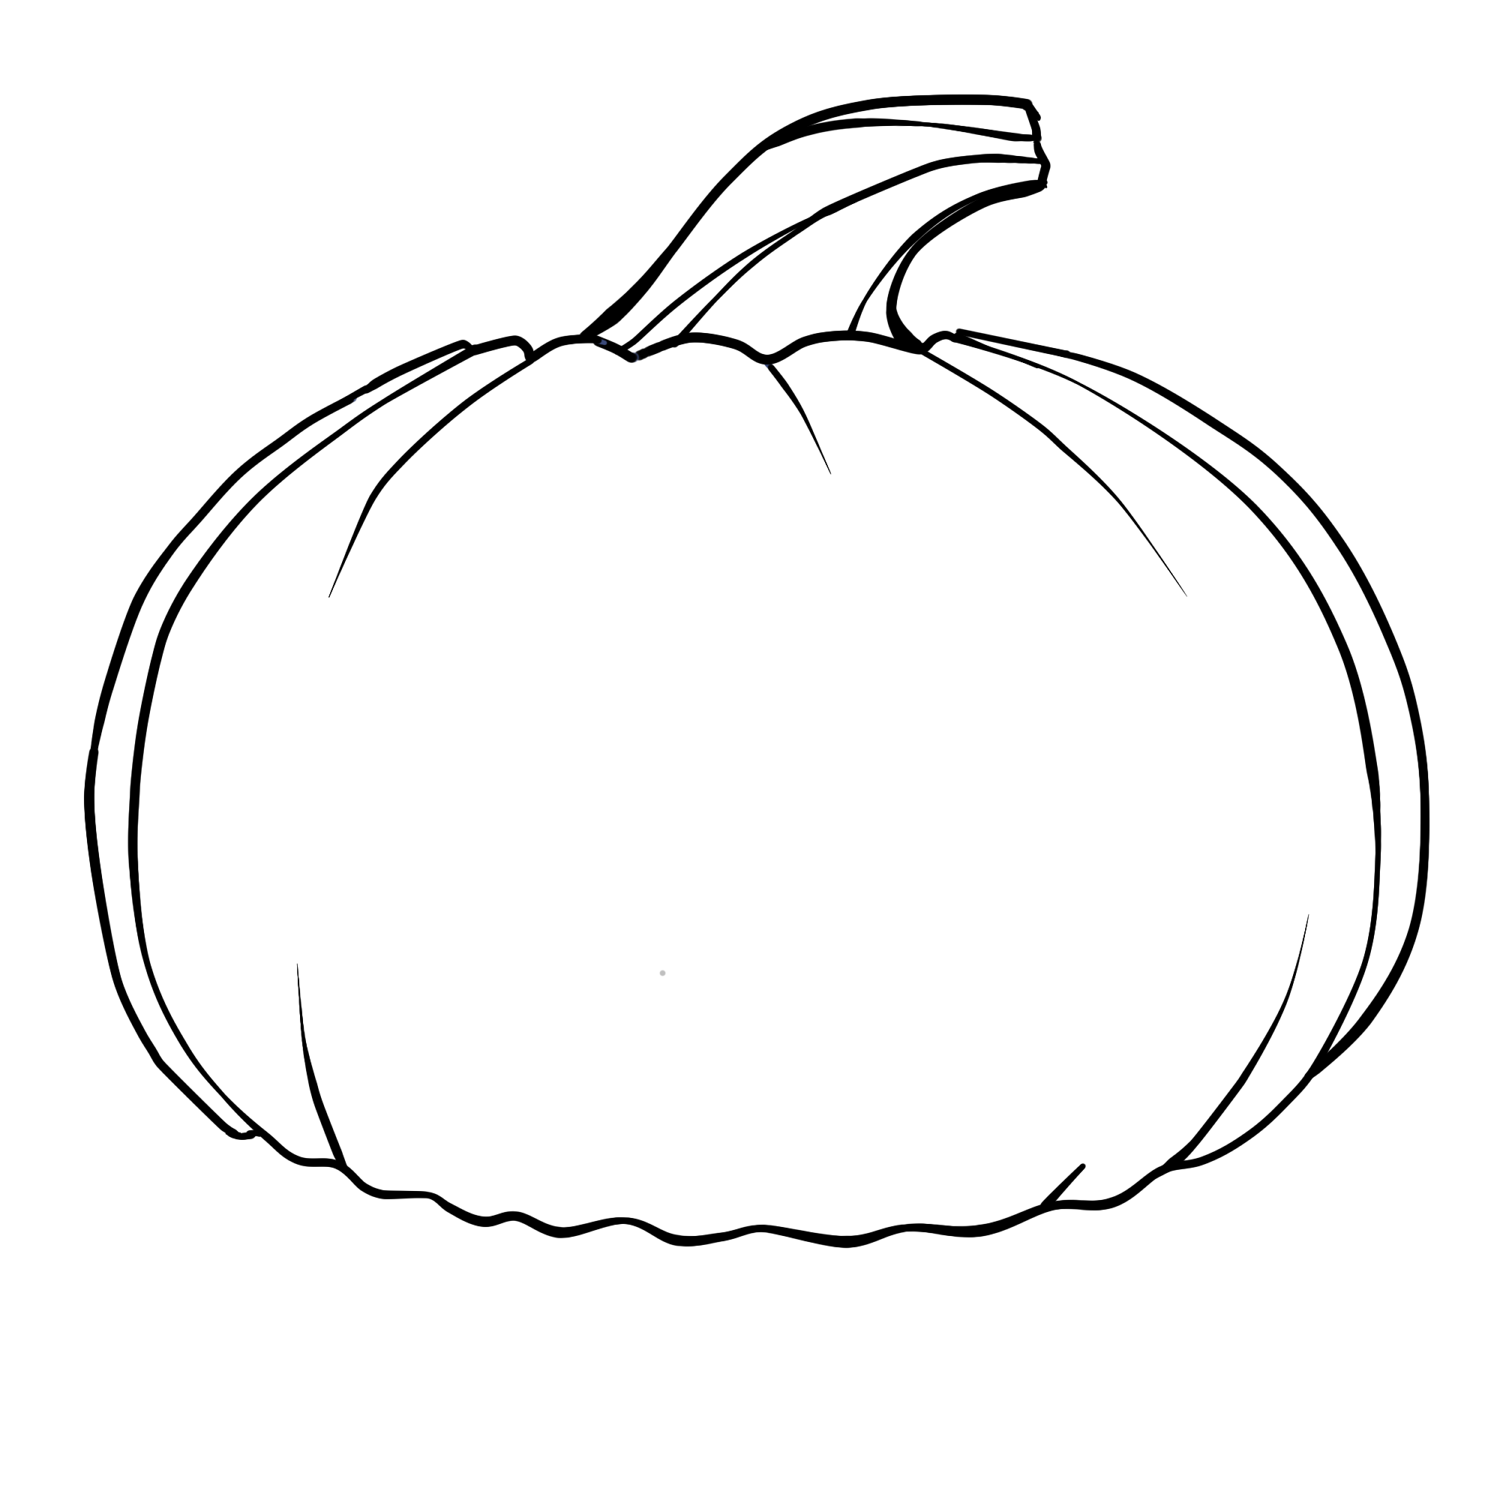 pumpkin cut out coloring pages - photo#7